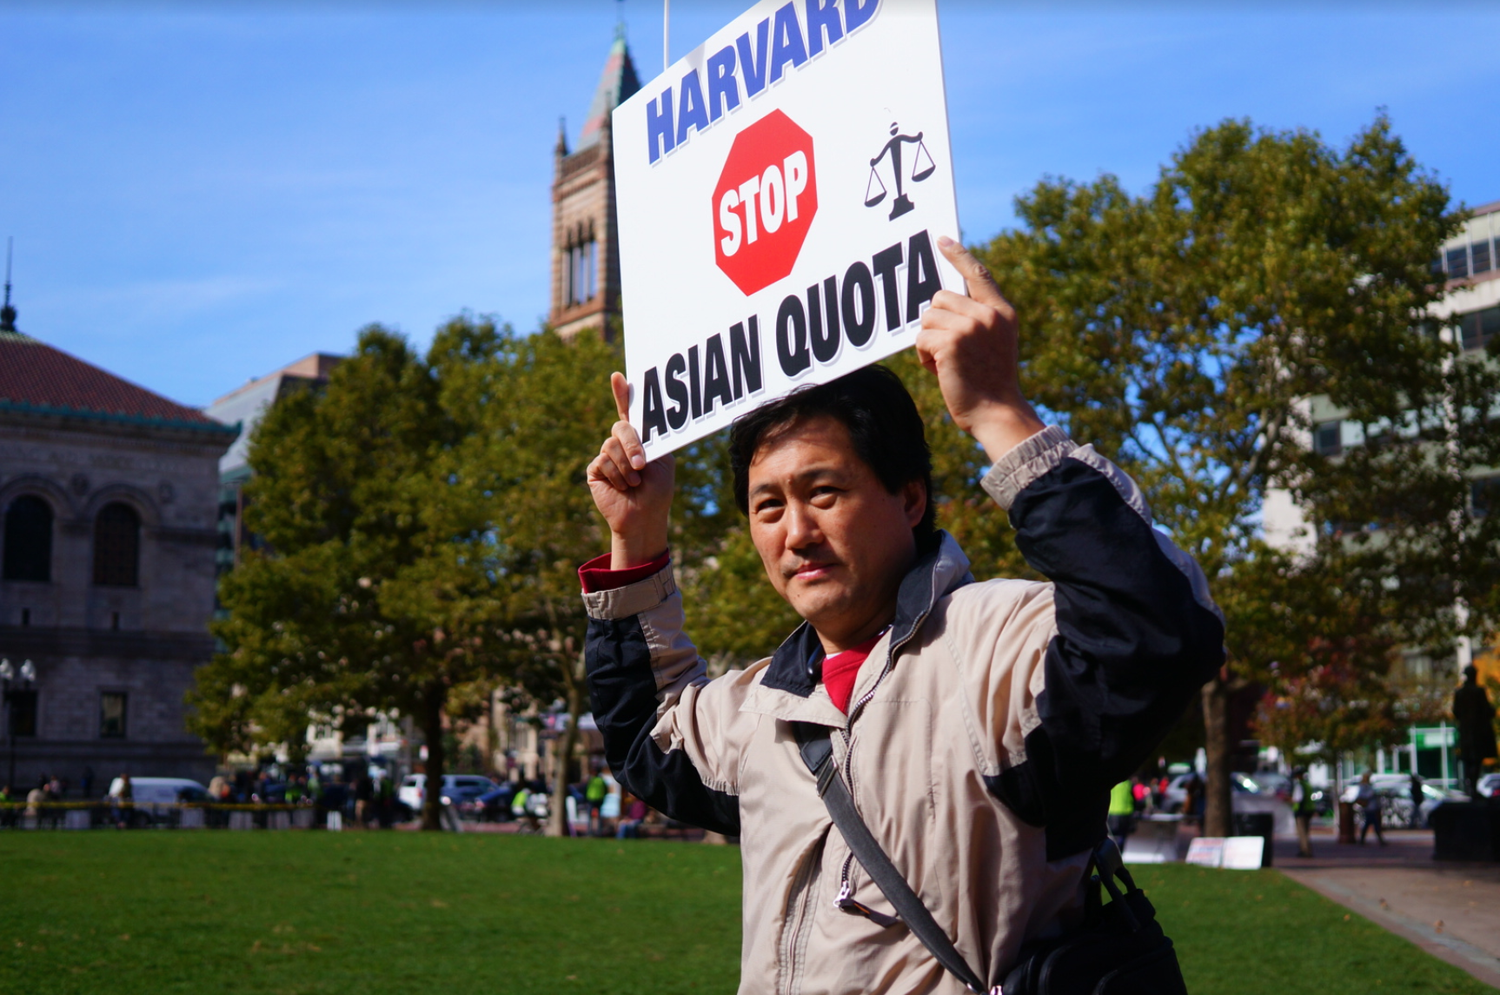 A protester at the pro-Students for Fair Admissions rally held in Copley Square Sunday. SFFA is suing Harvard over allegations it discriminates Asian-American applicants.